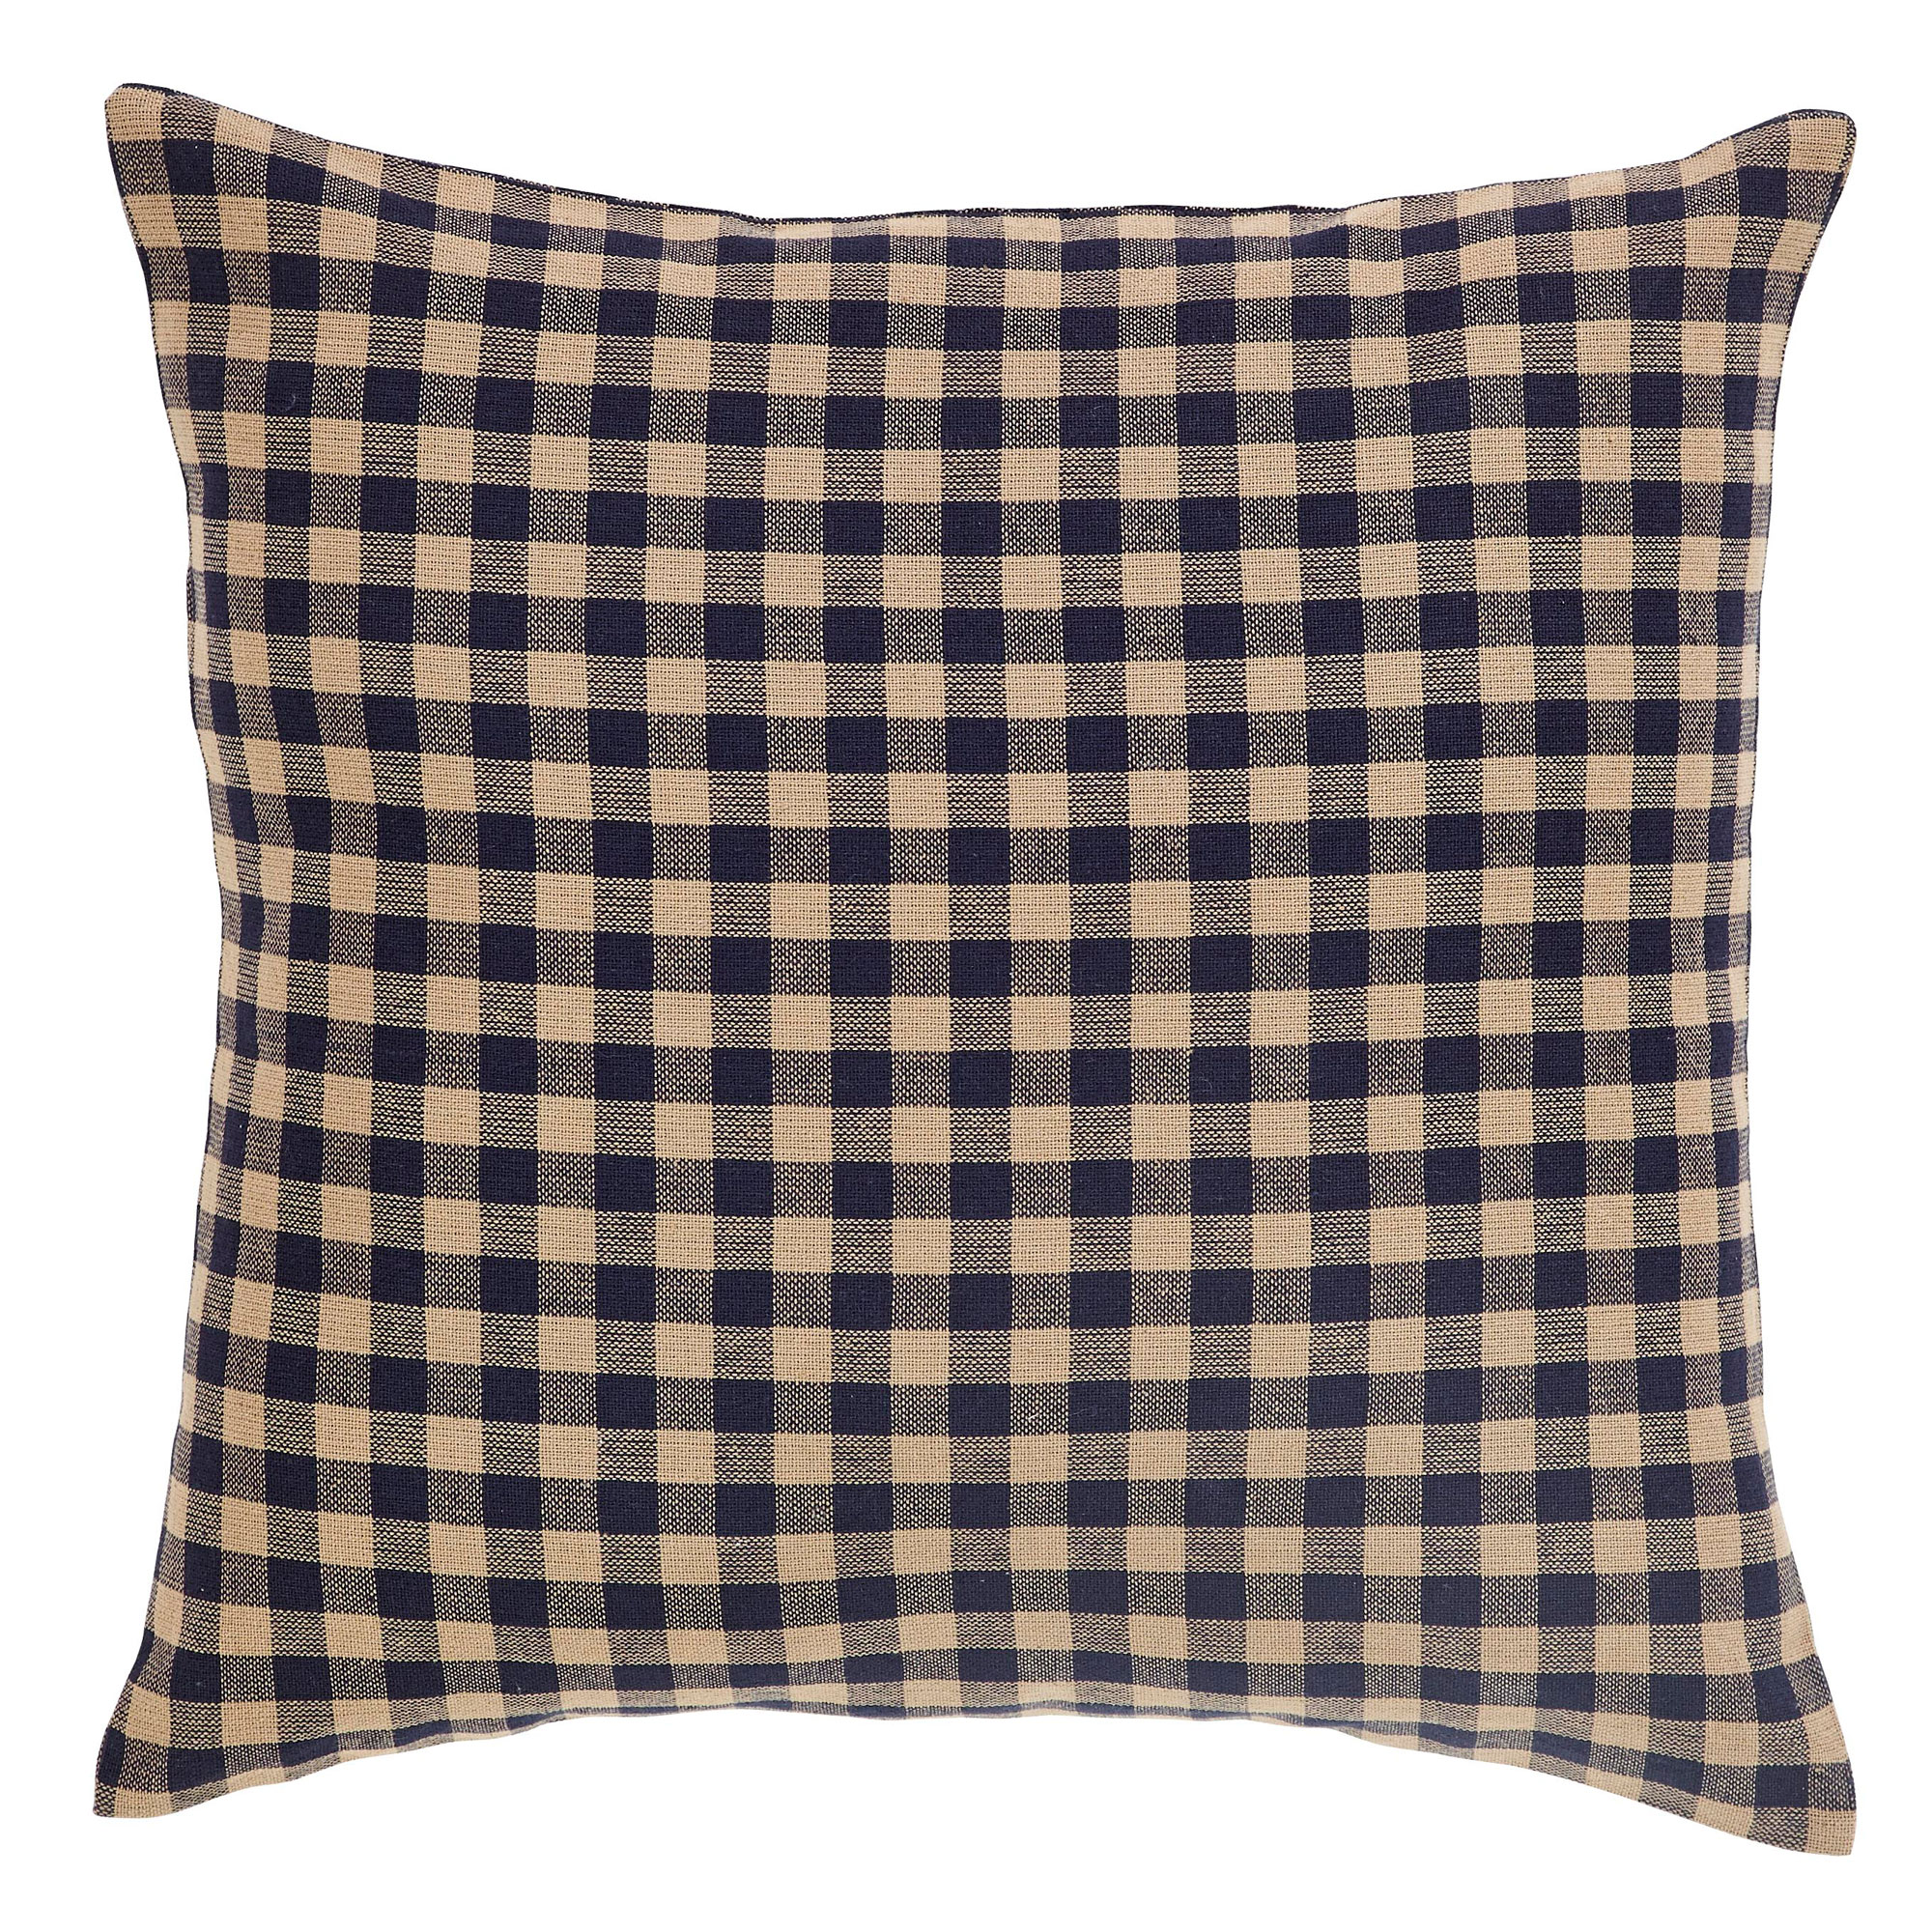 vhc-20141-navy-check-fabric-pillow-cover-lrg